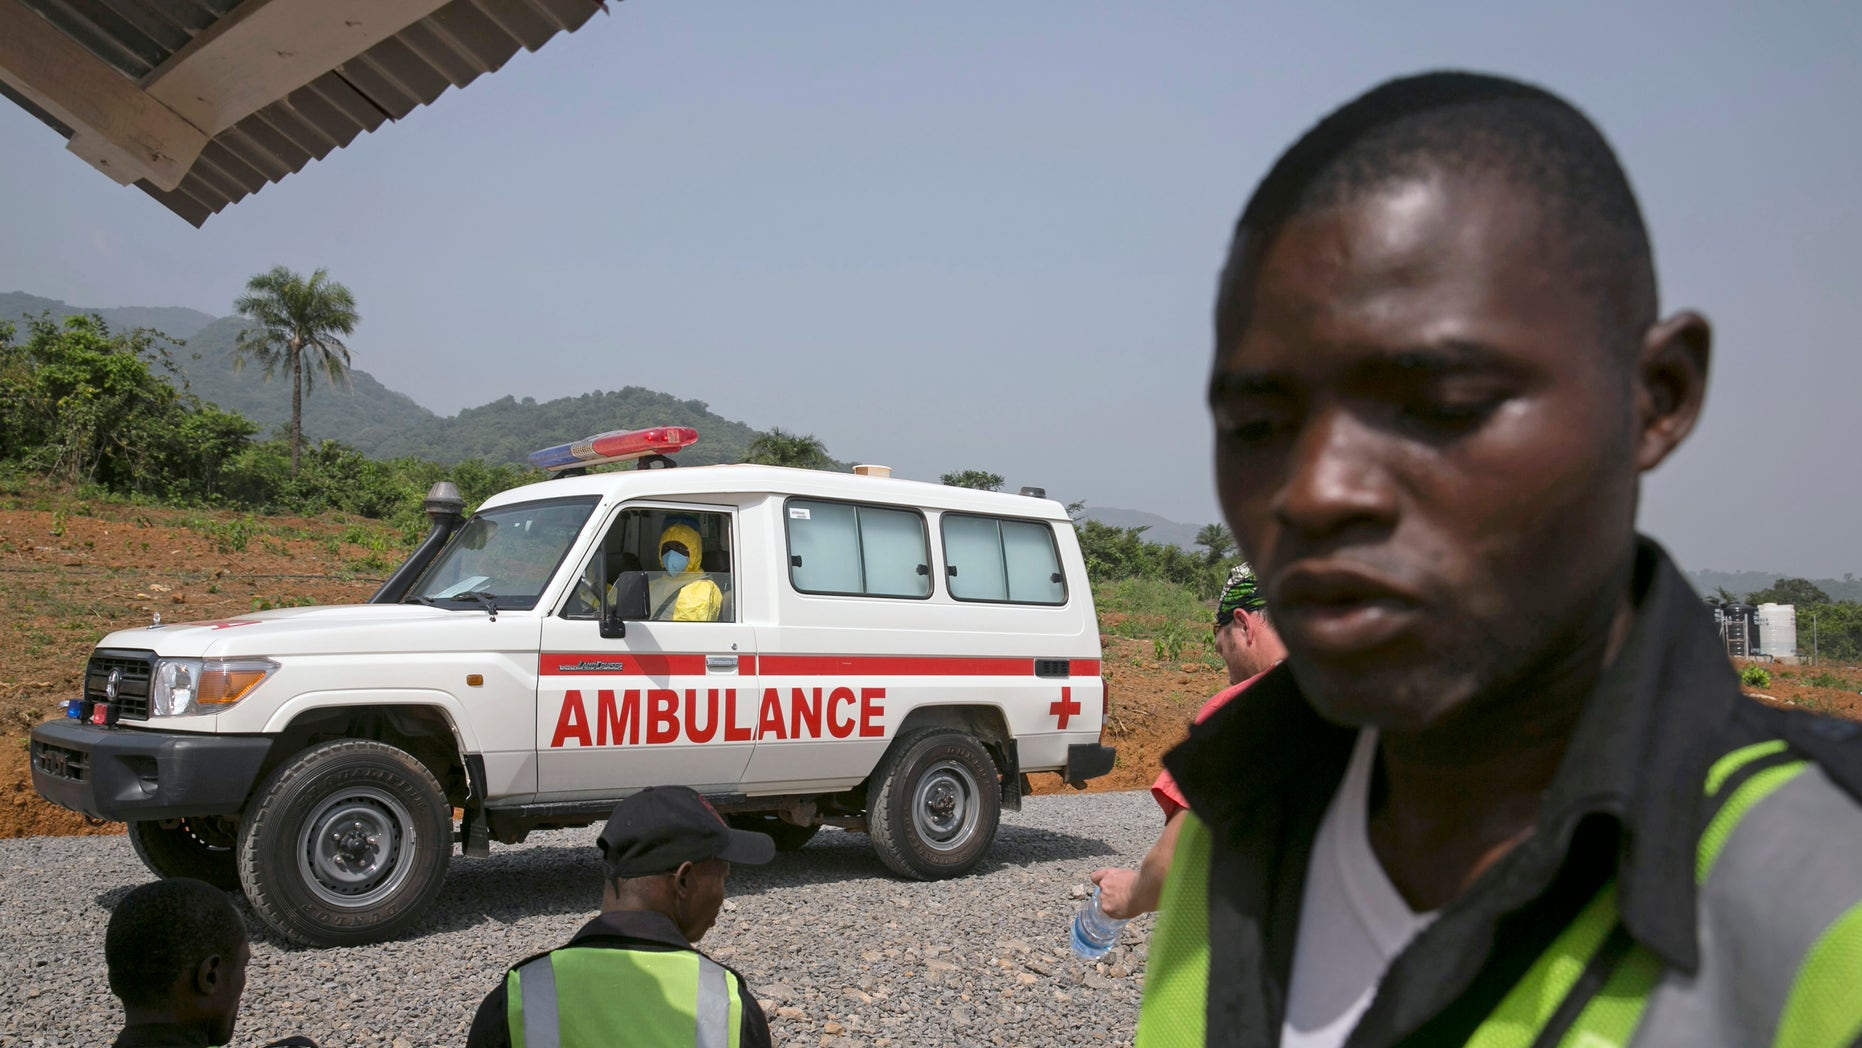 An ambulance transporting a newly admitted Ebola patient drives to the entrance of the Save the Children Kerry Town Ebola treatment centre outside Freetown, Sierra Leone, December 22, 2014.